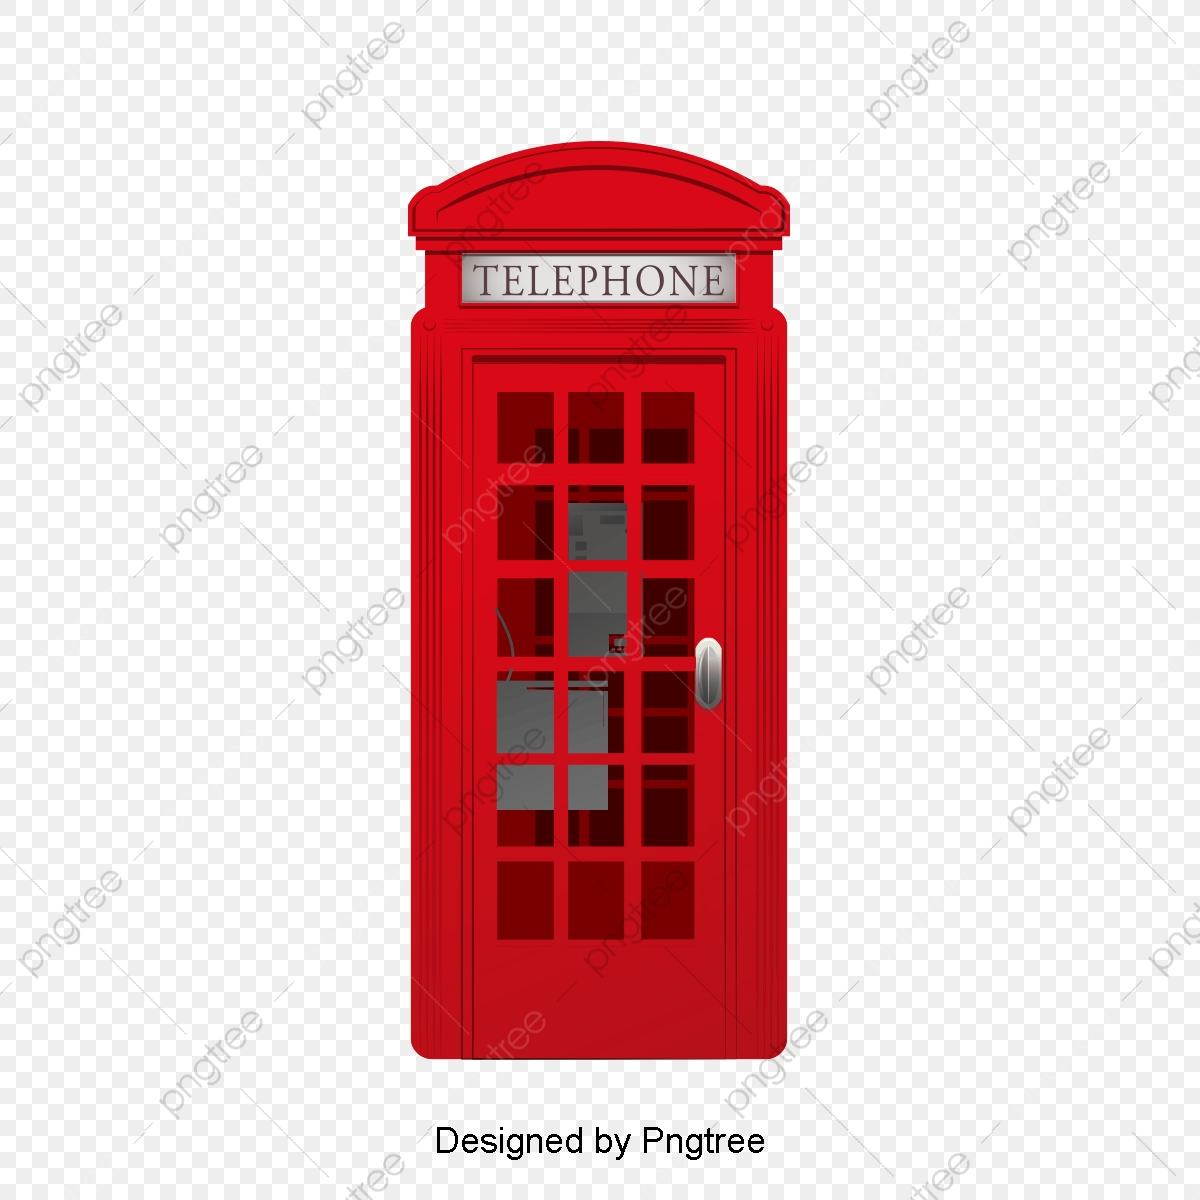 London clipart phone booth british. Telephone united kingdom png